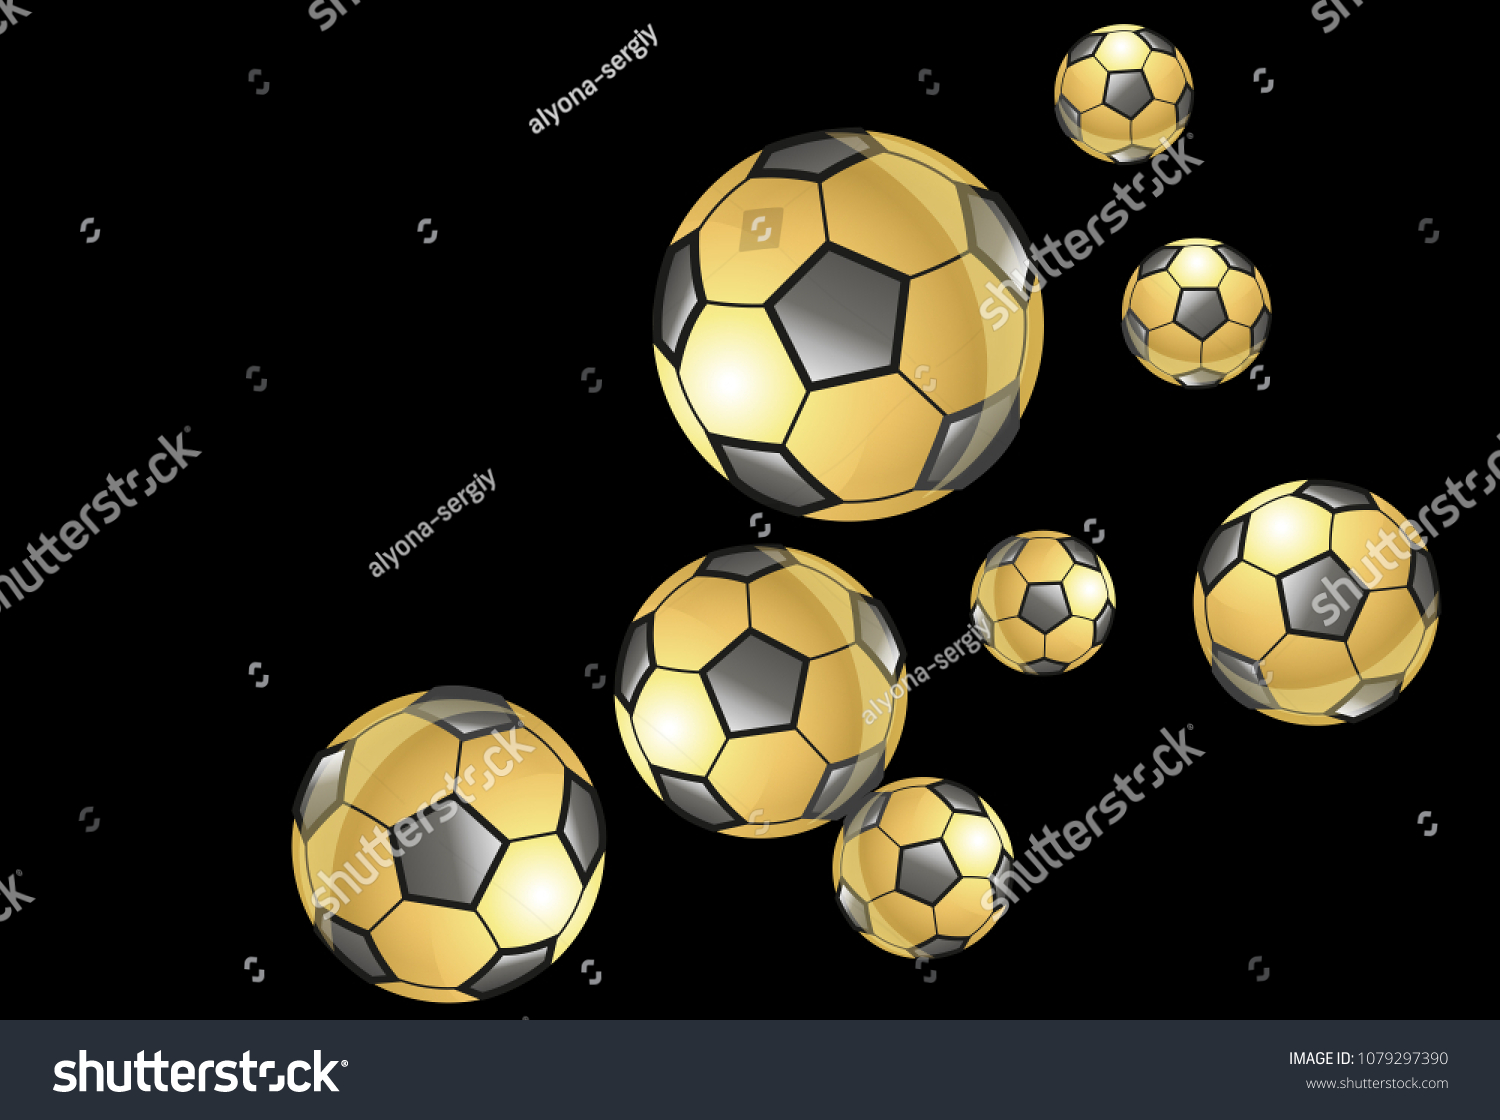 Background Soccer Balls Colorful Sportish Wallpaper Stock Vector Royalty Free 1079297390